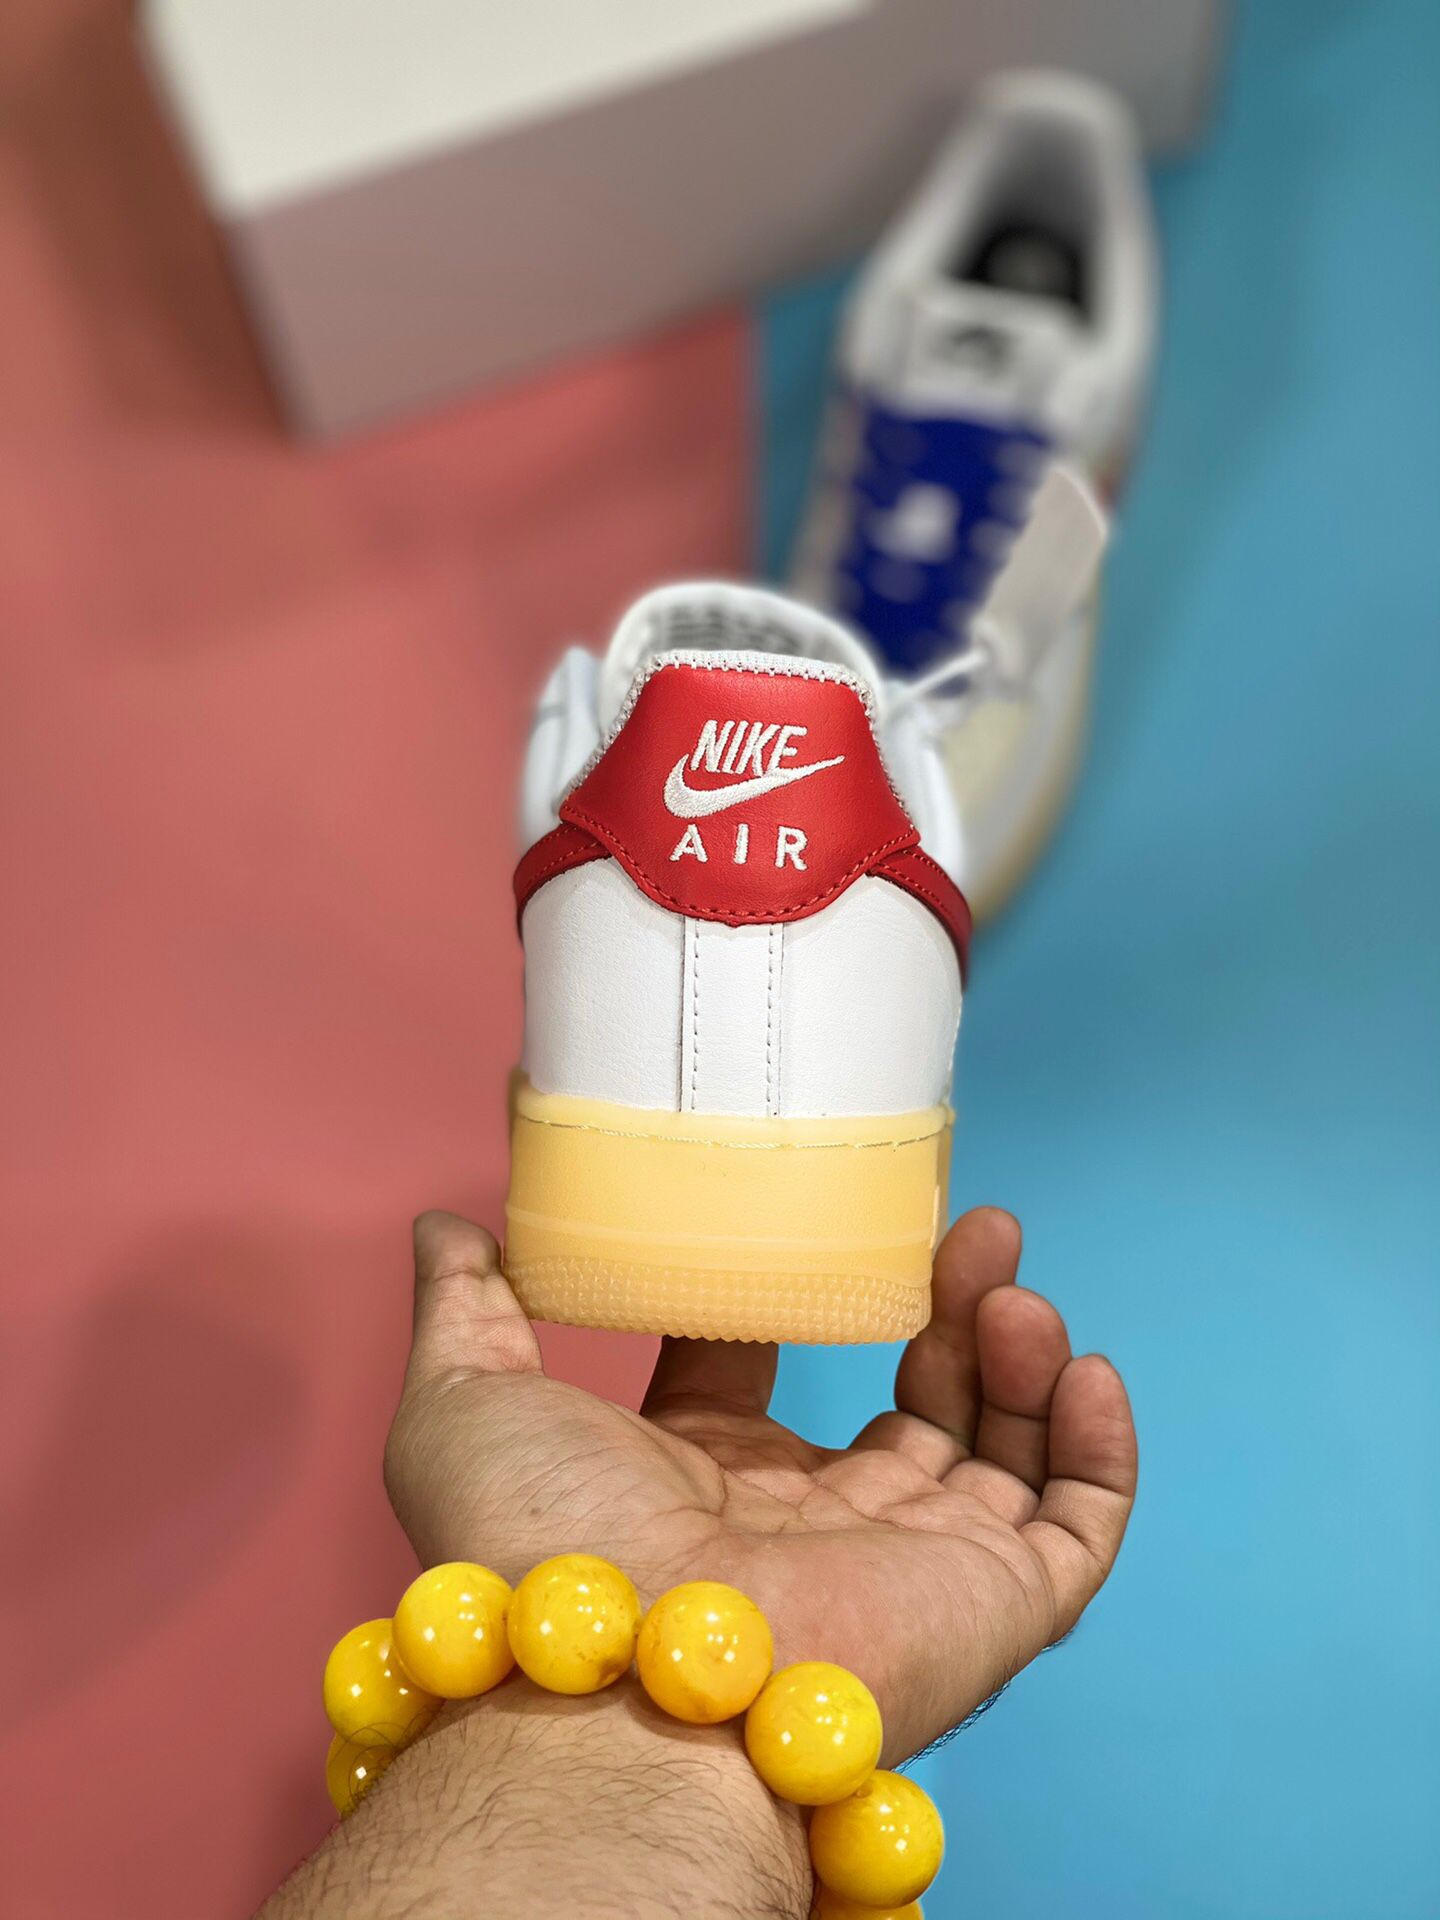 NIKE Air force1 structuralist style of air force 1 20 years exclusive custom limited edition